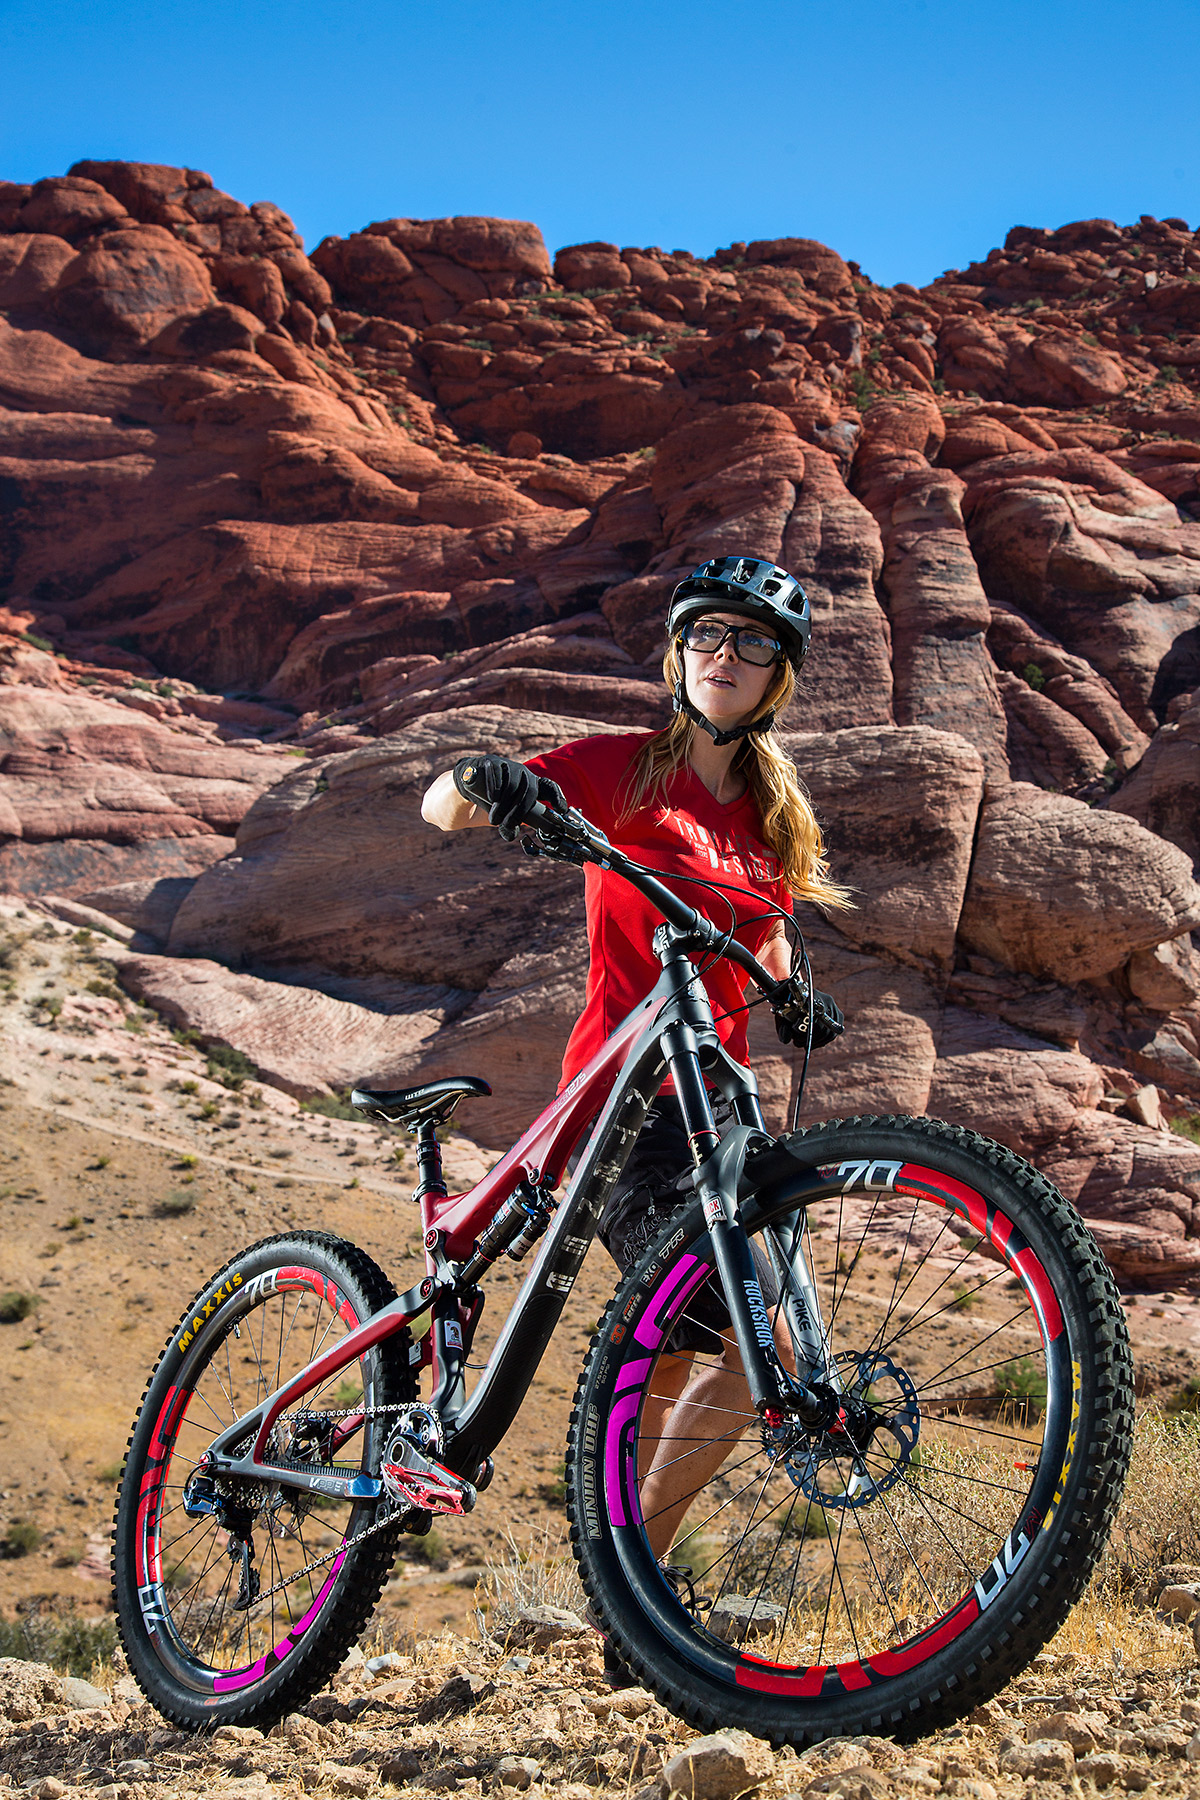 MOUNTAIN-BIKE_RED-ROCKS_NEVADA MATHIS ACTION SPORTS PORTRAIT © JONATHAN R. BECKERMAN PHOTOGRAPHY 4.jpg